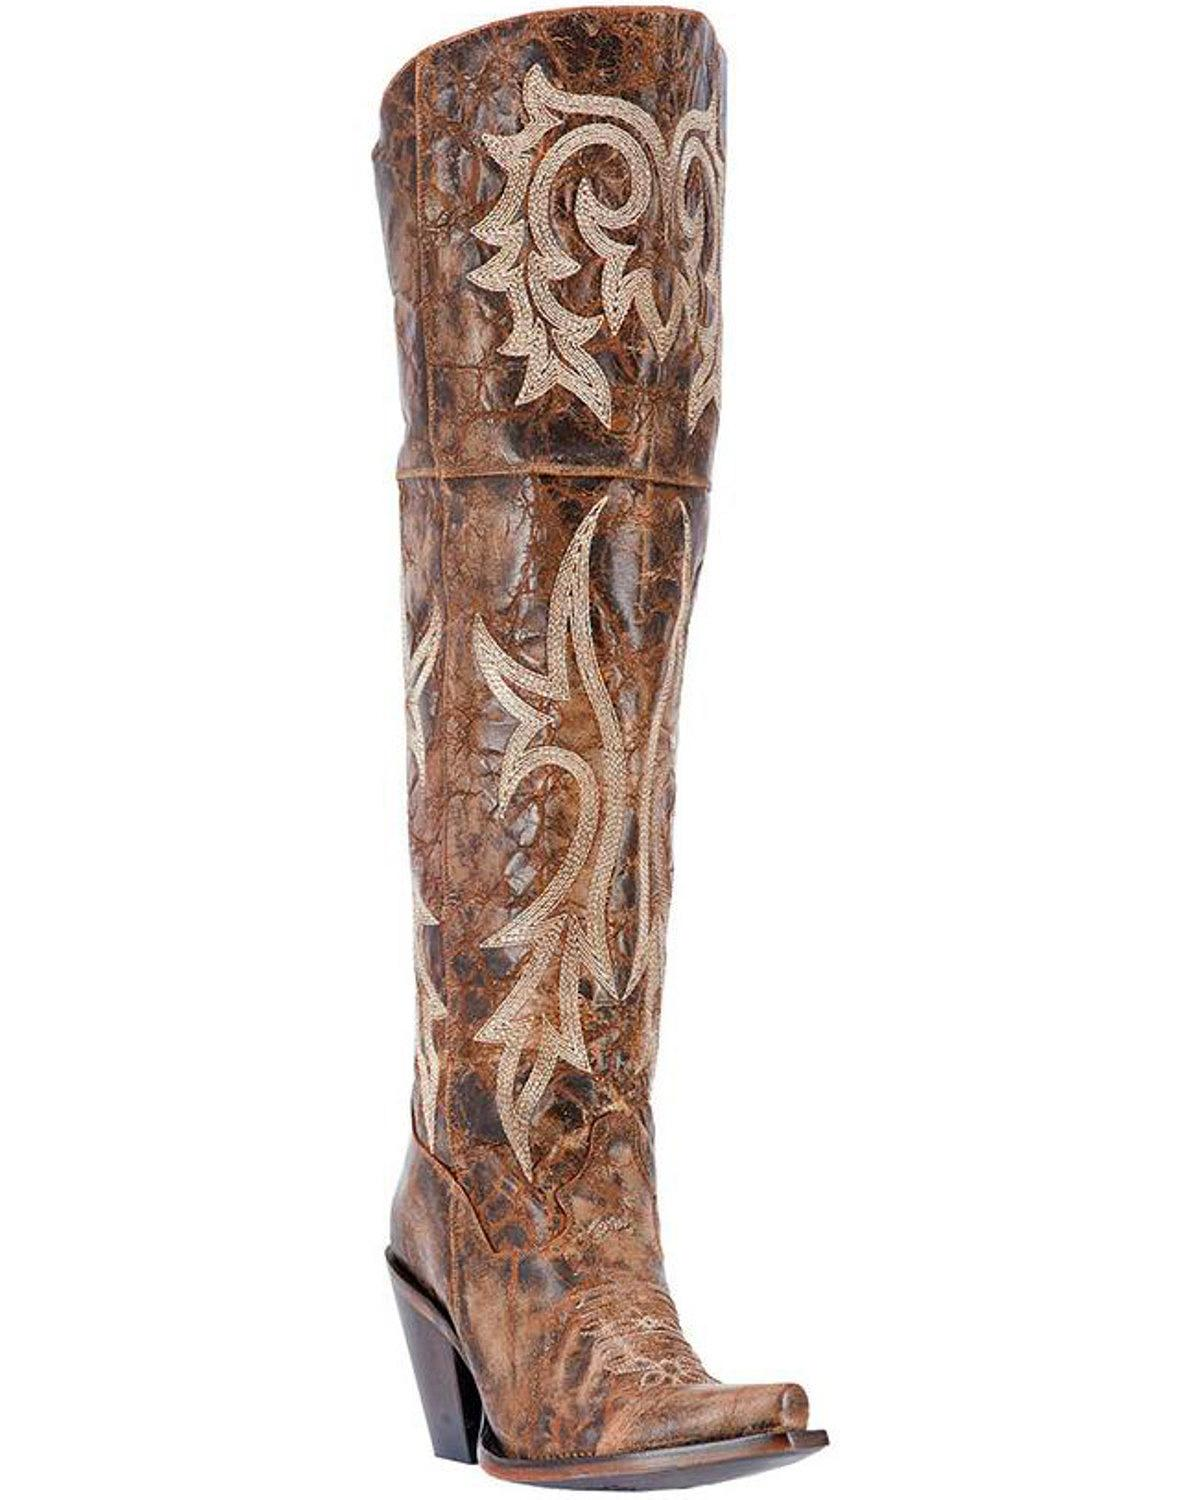 c5e6ba11ea3 Women's Tall Boots - Boot Barn